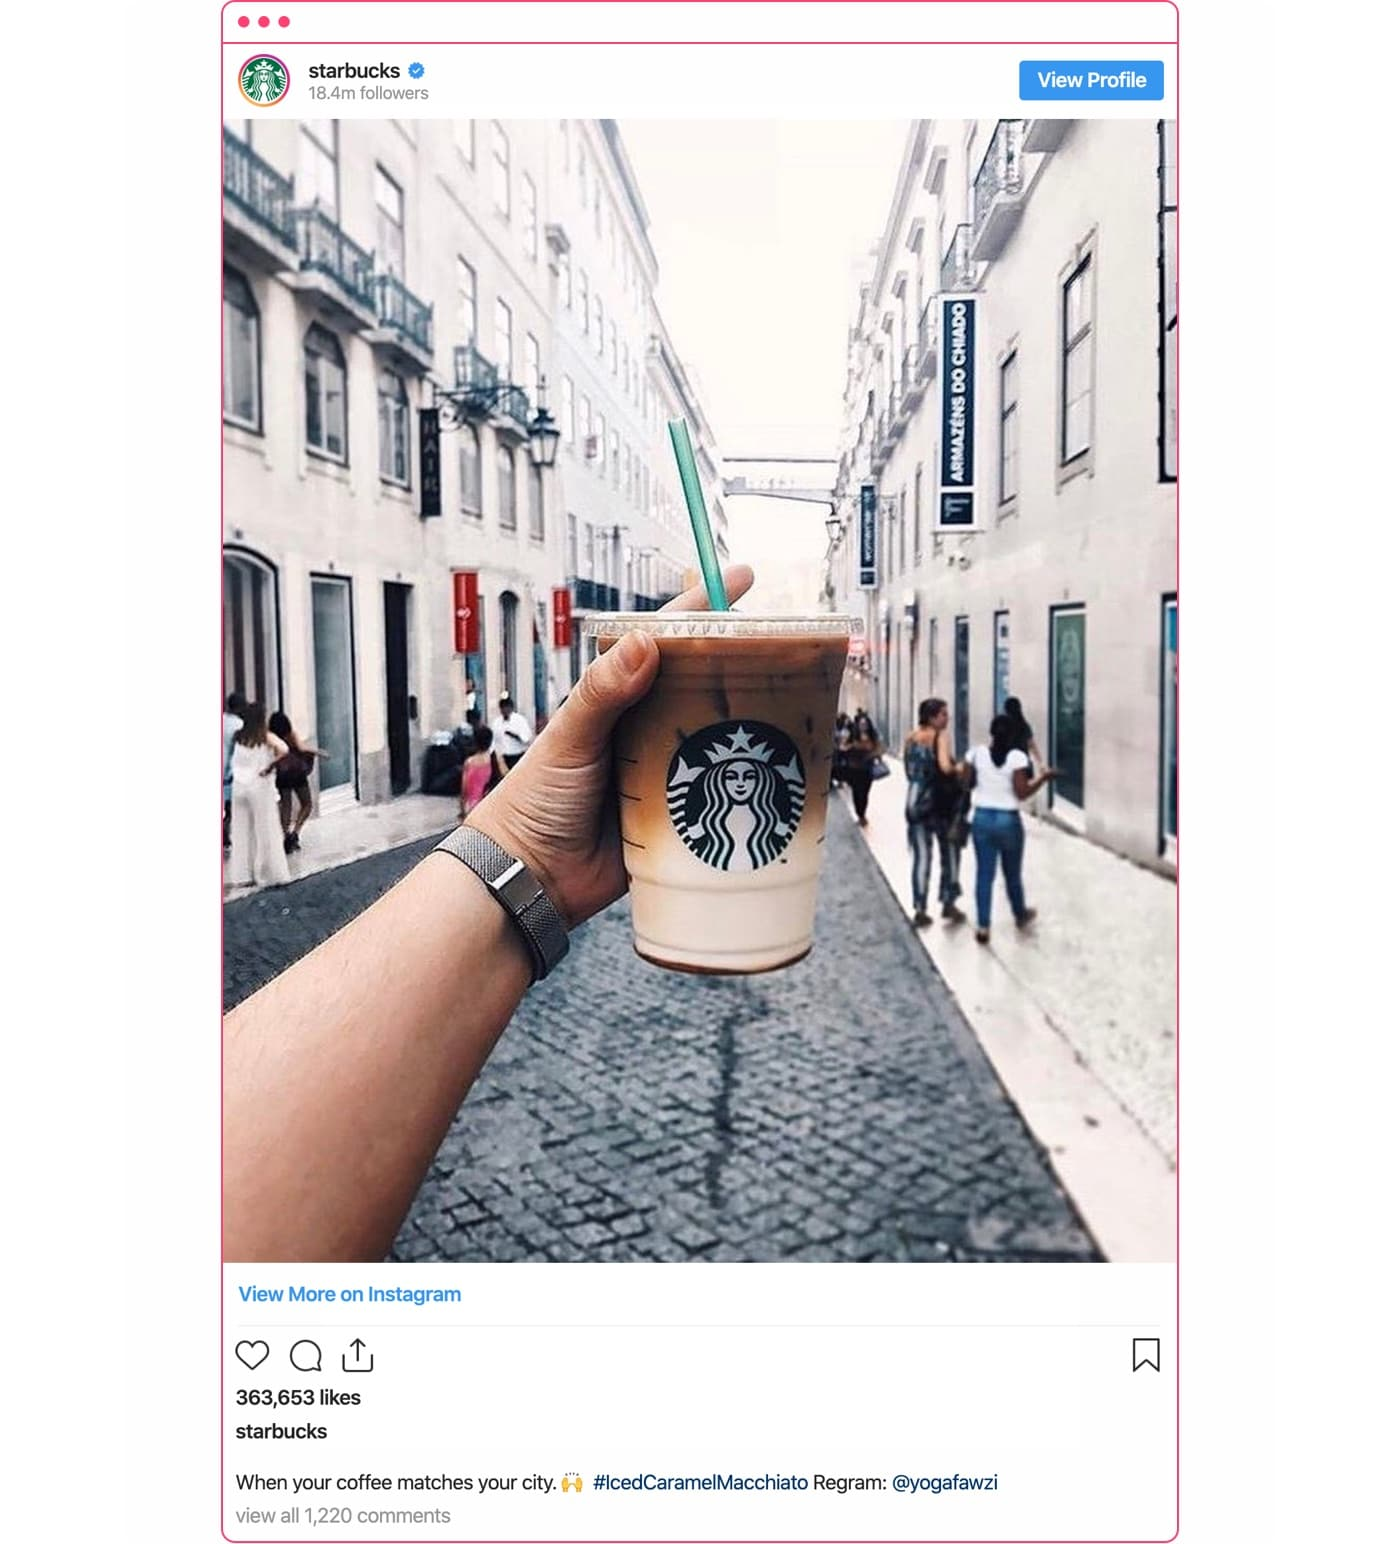 instagram engage with followers